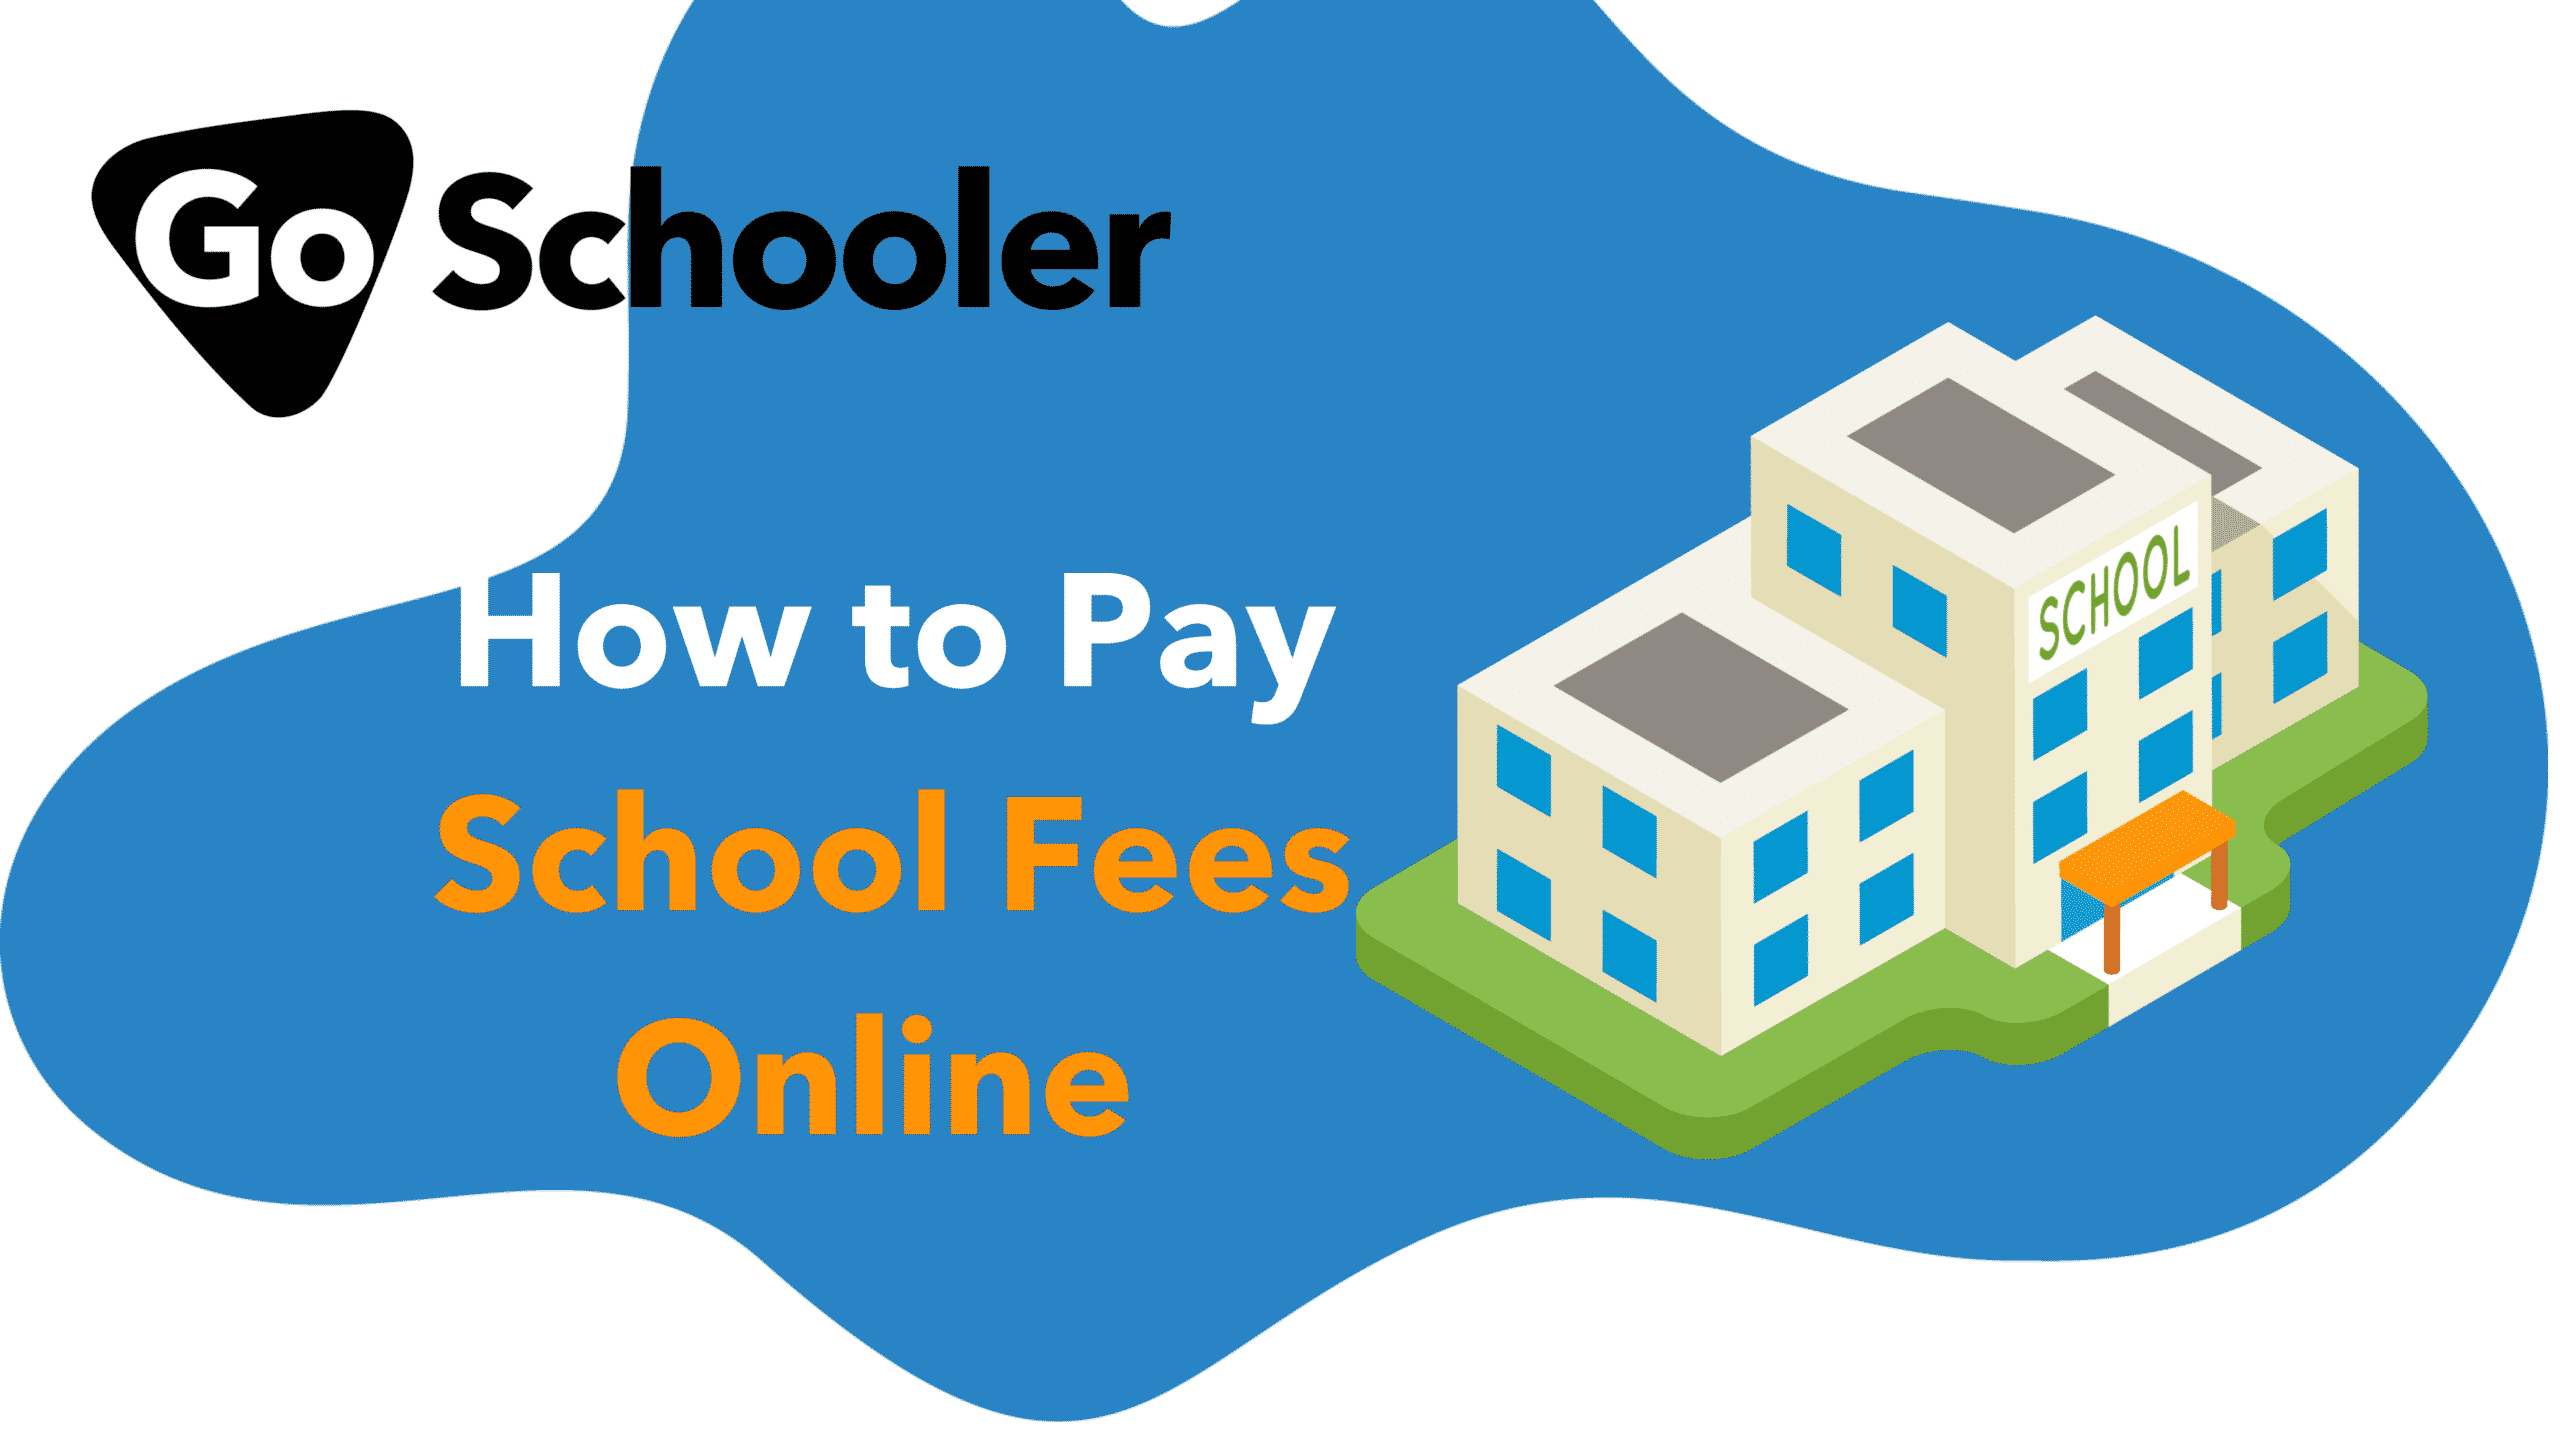 How to Pay School Fees Online